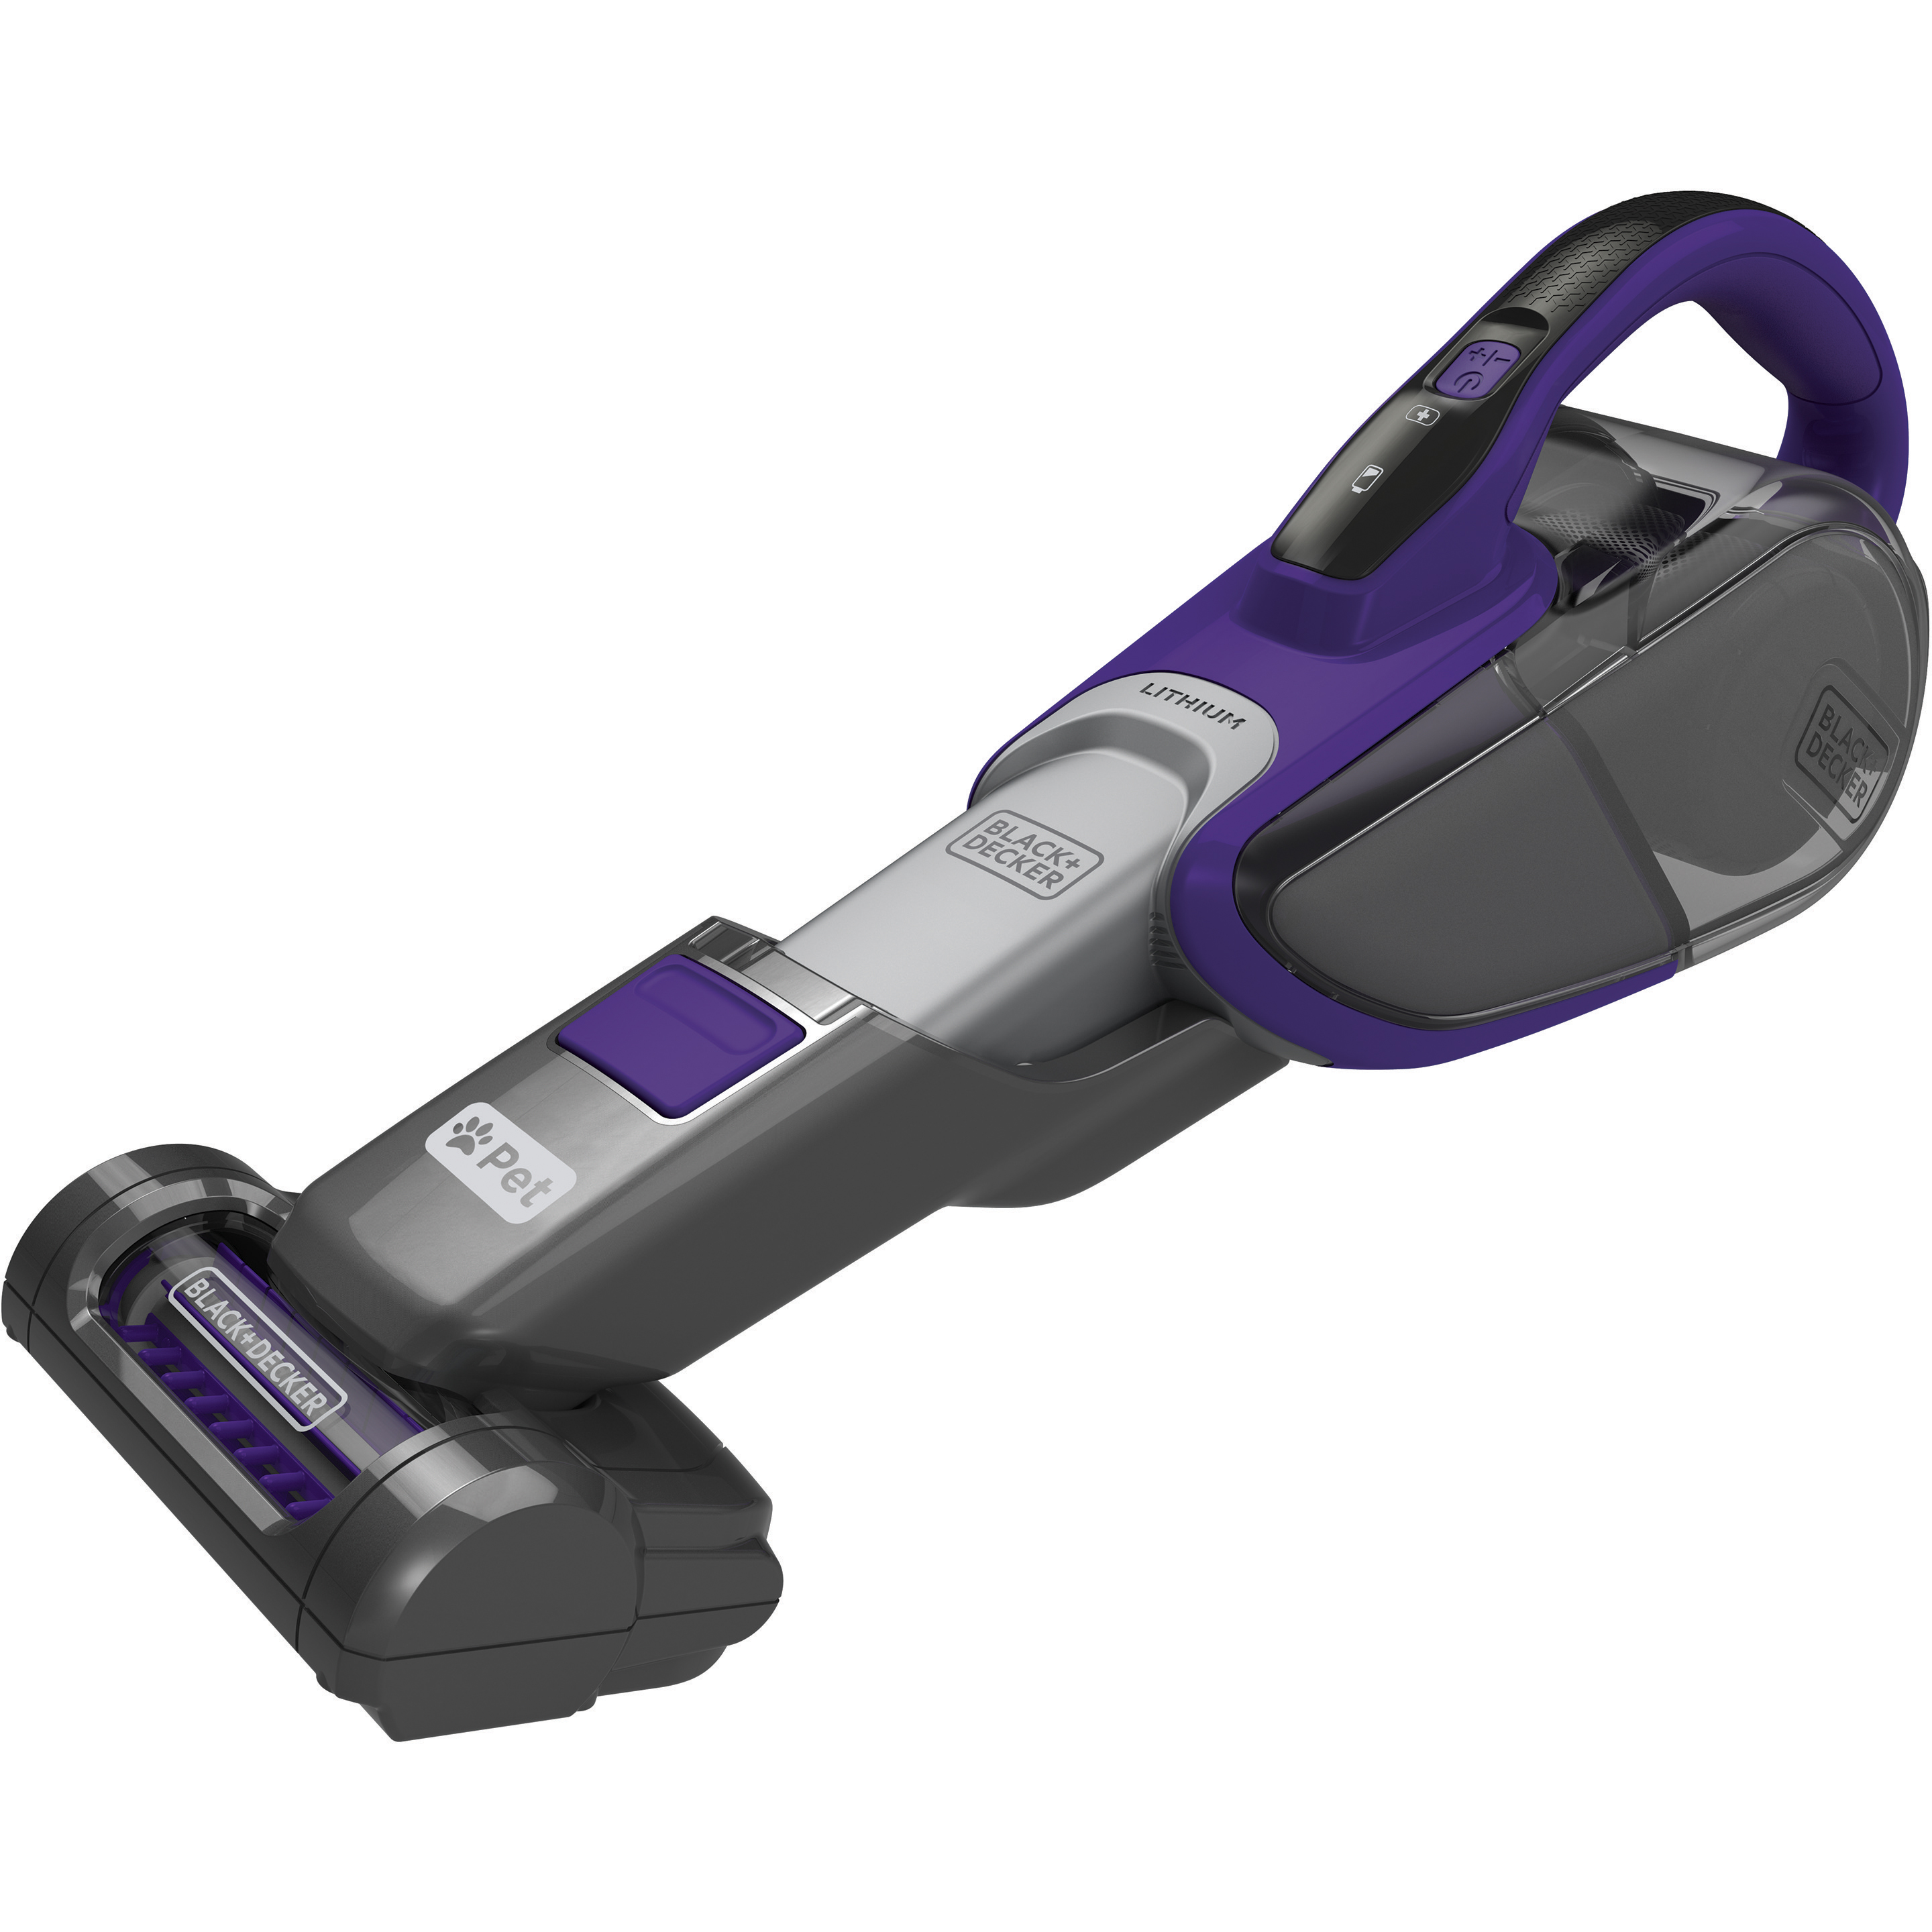 BLACK+DECKER™ HHVJ315JDP27 Dustbuster® Lithium Hand Vacuum Pet, Purple